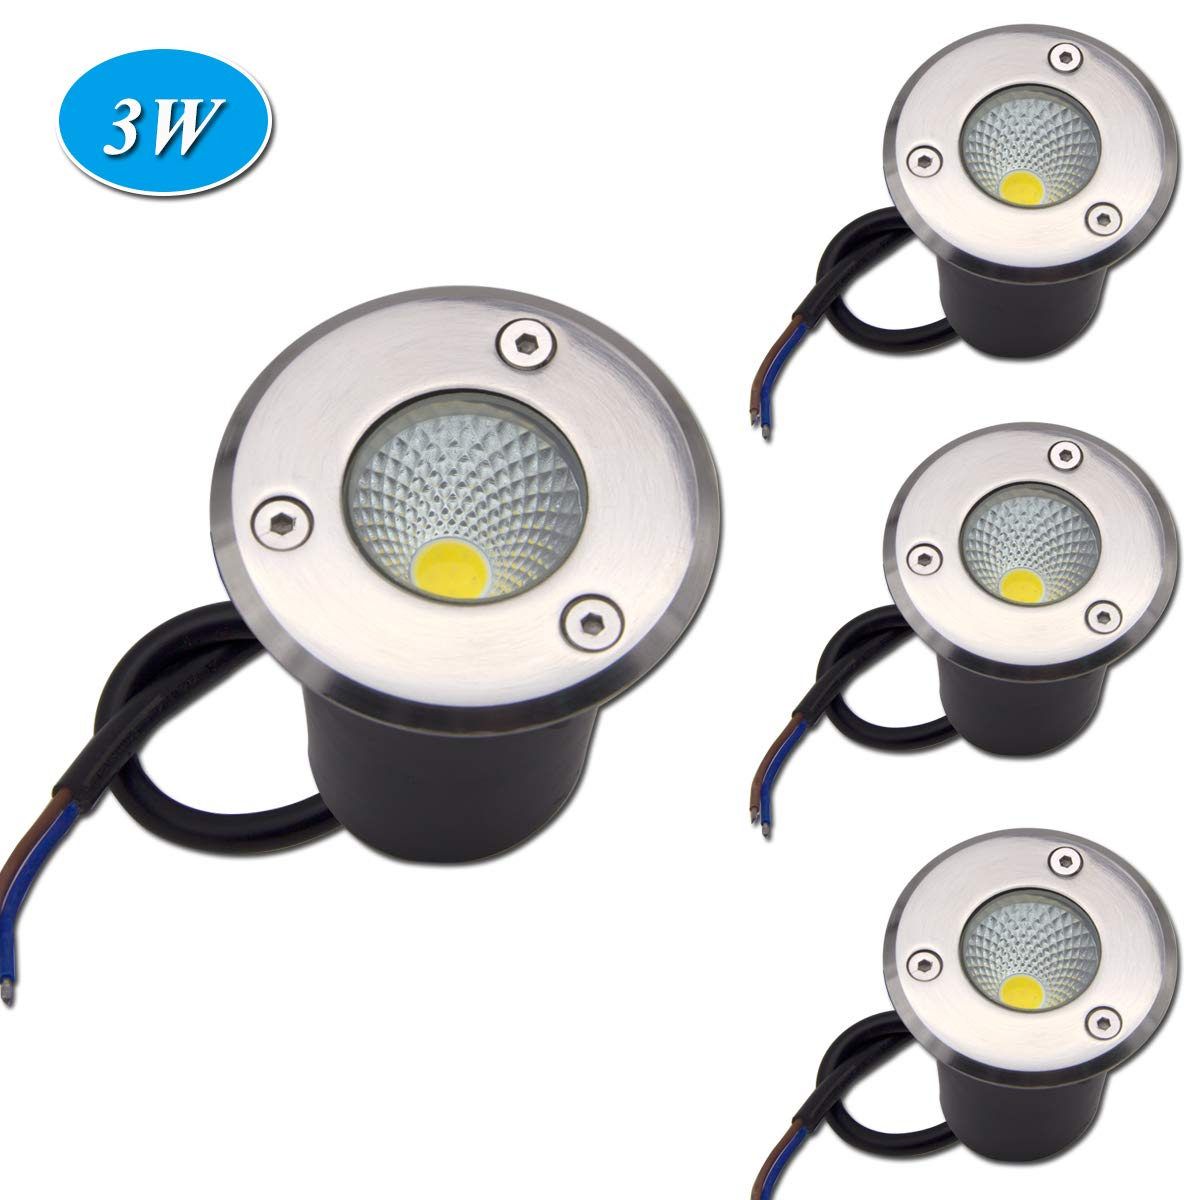 LAVAED 4 Pack Low Voltage Landscape Lights COB 3W 12V Led Pathway Lighting Waterproof IP67 Warm White Outdoor Spotlights Trees Flags In-ground Lights ...